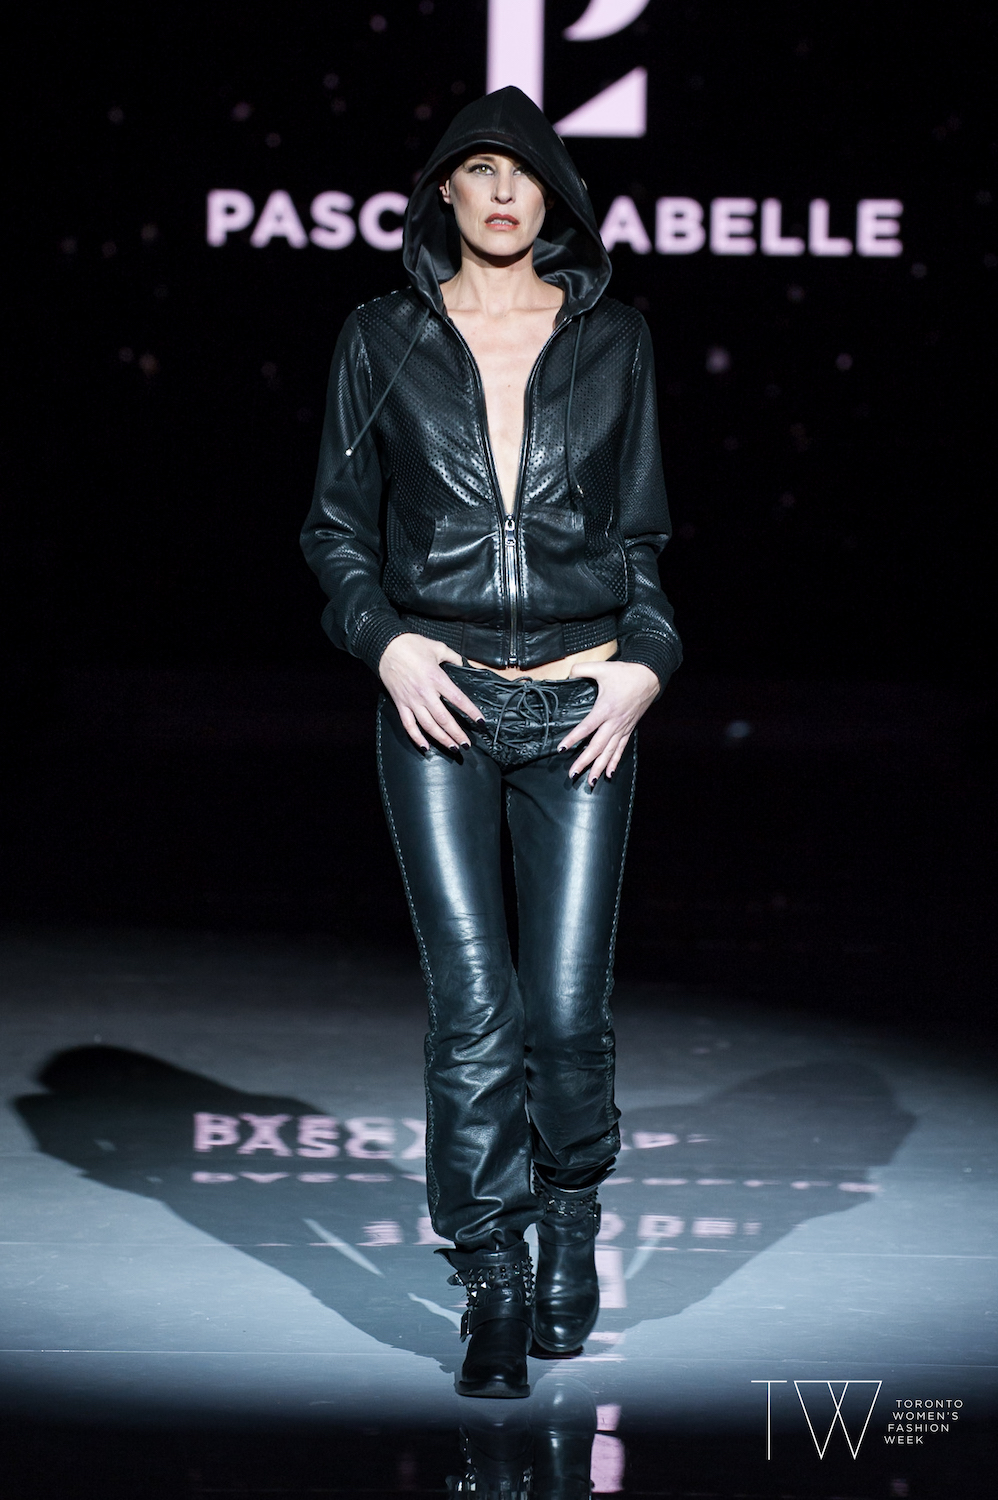 pascal_labelle-twfw-toronto-womens-fashion-week-photo-credit-che-rosales-womens-look-1.jpg